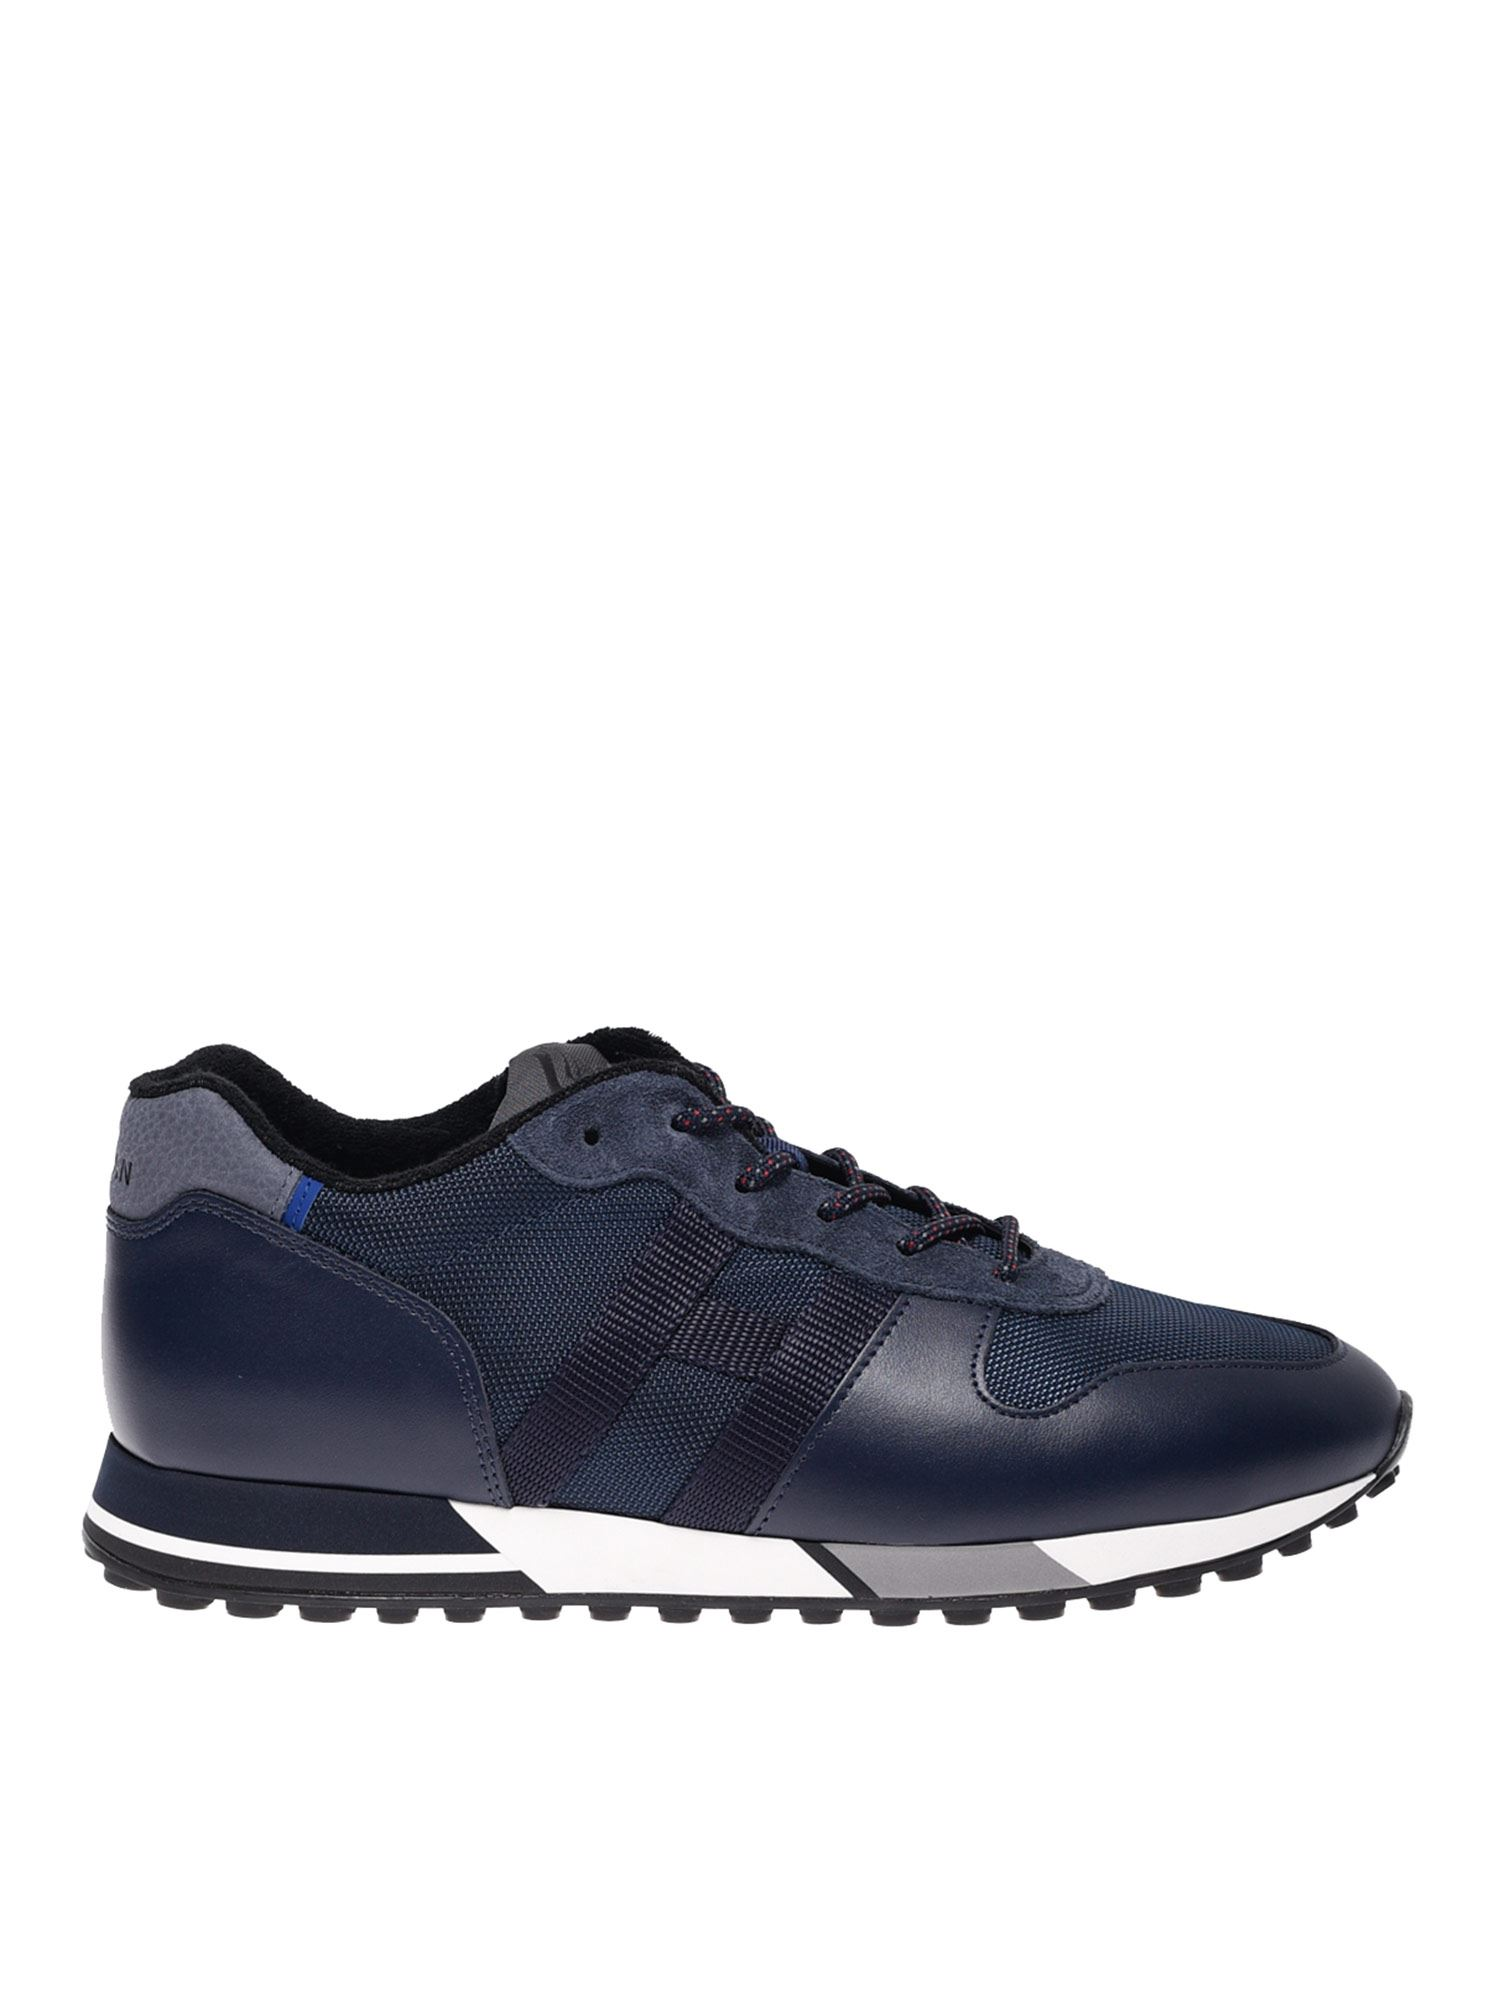 Hogan H383 SNEAKERS IN BLUE